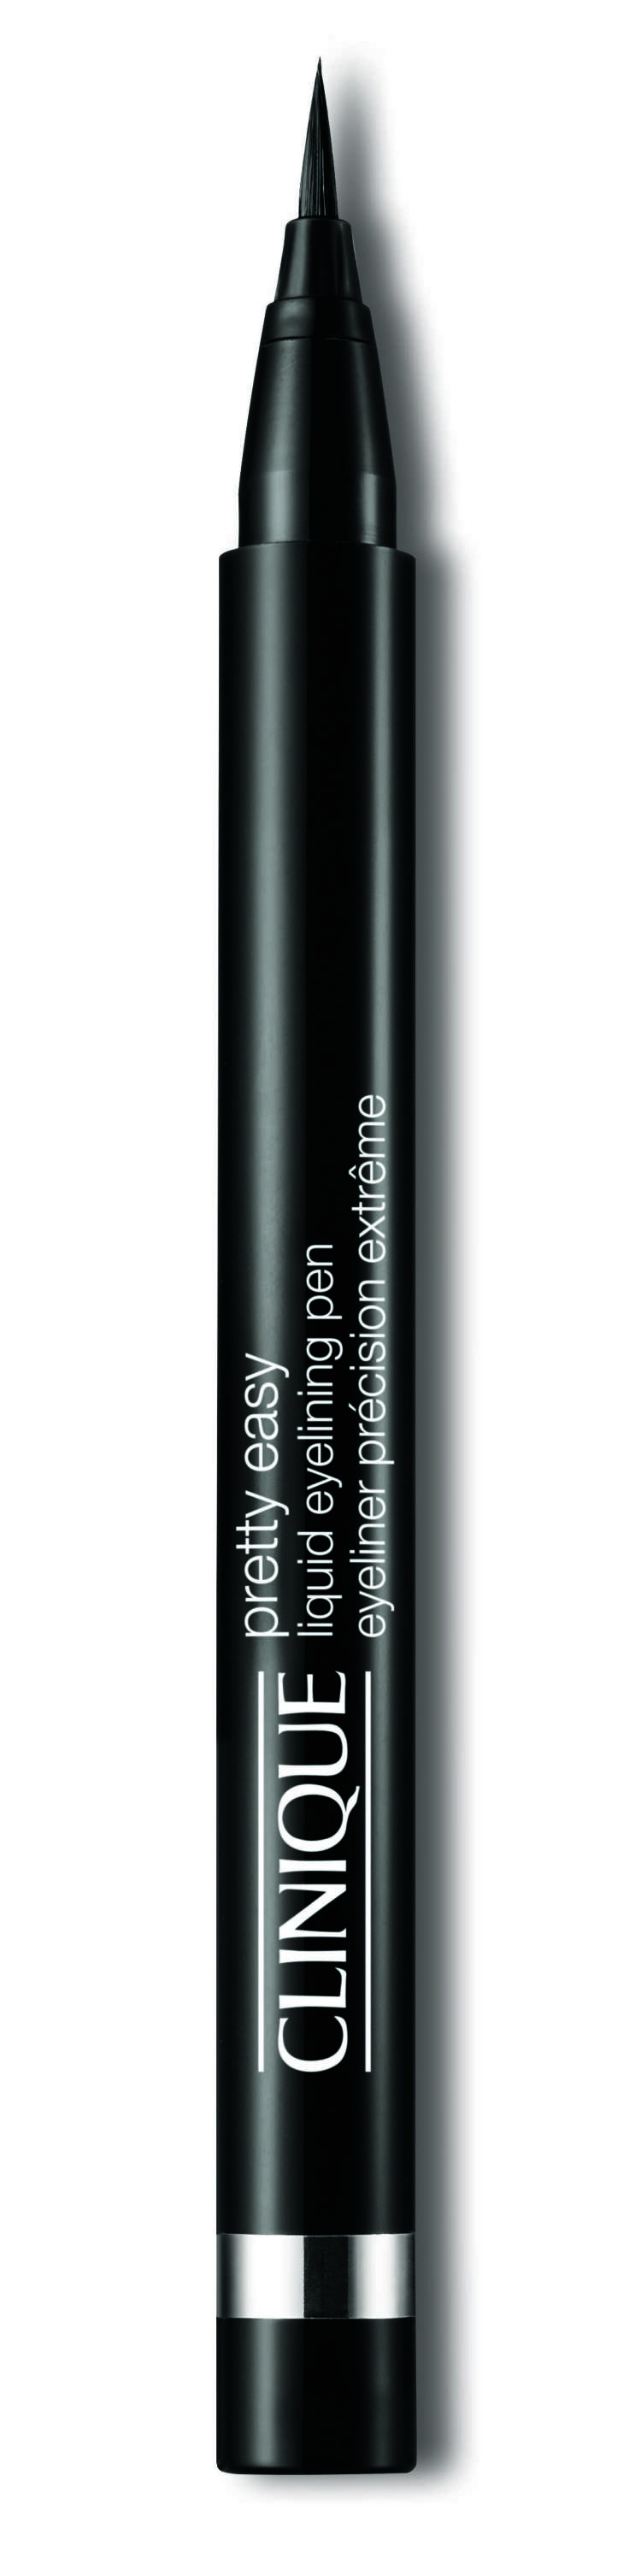 Clinique_Pretty Easy Liquid Eyelining Pen.jpg